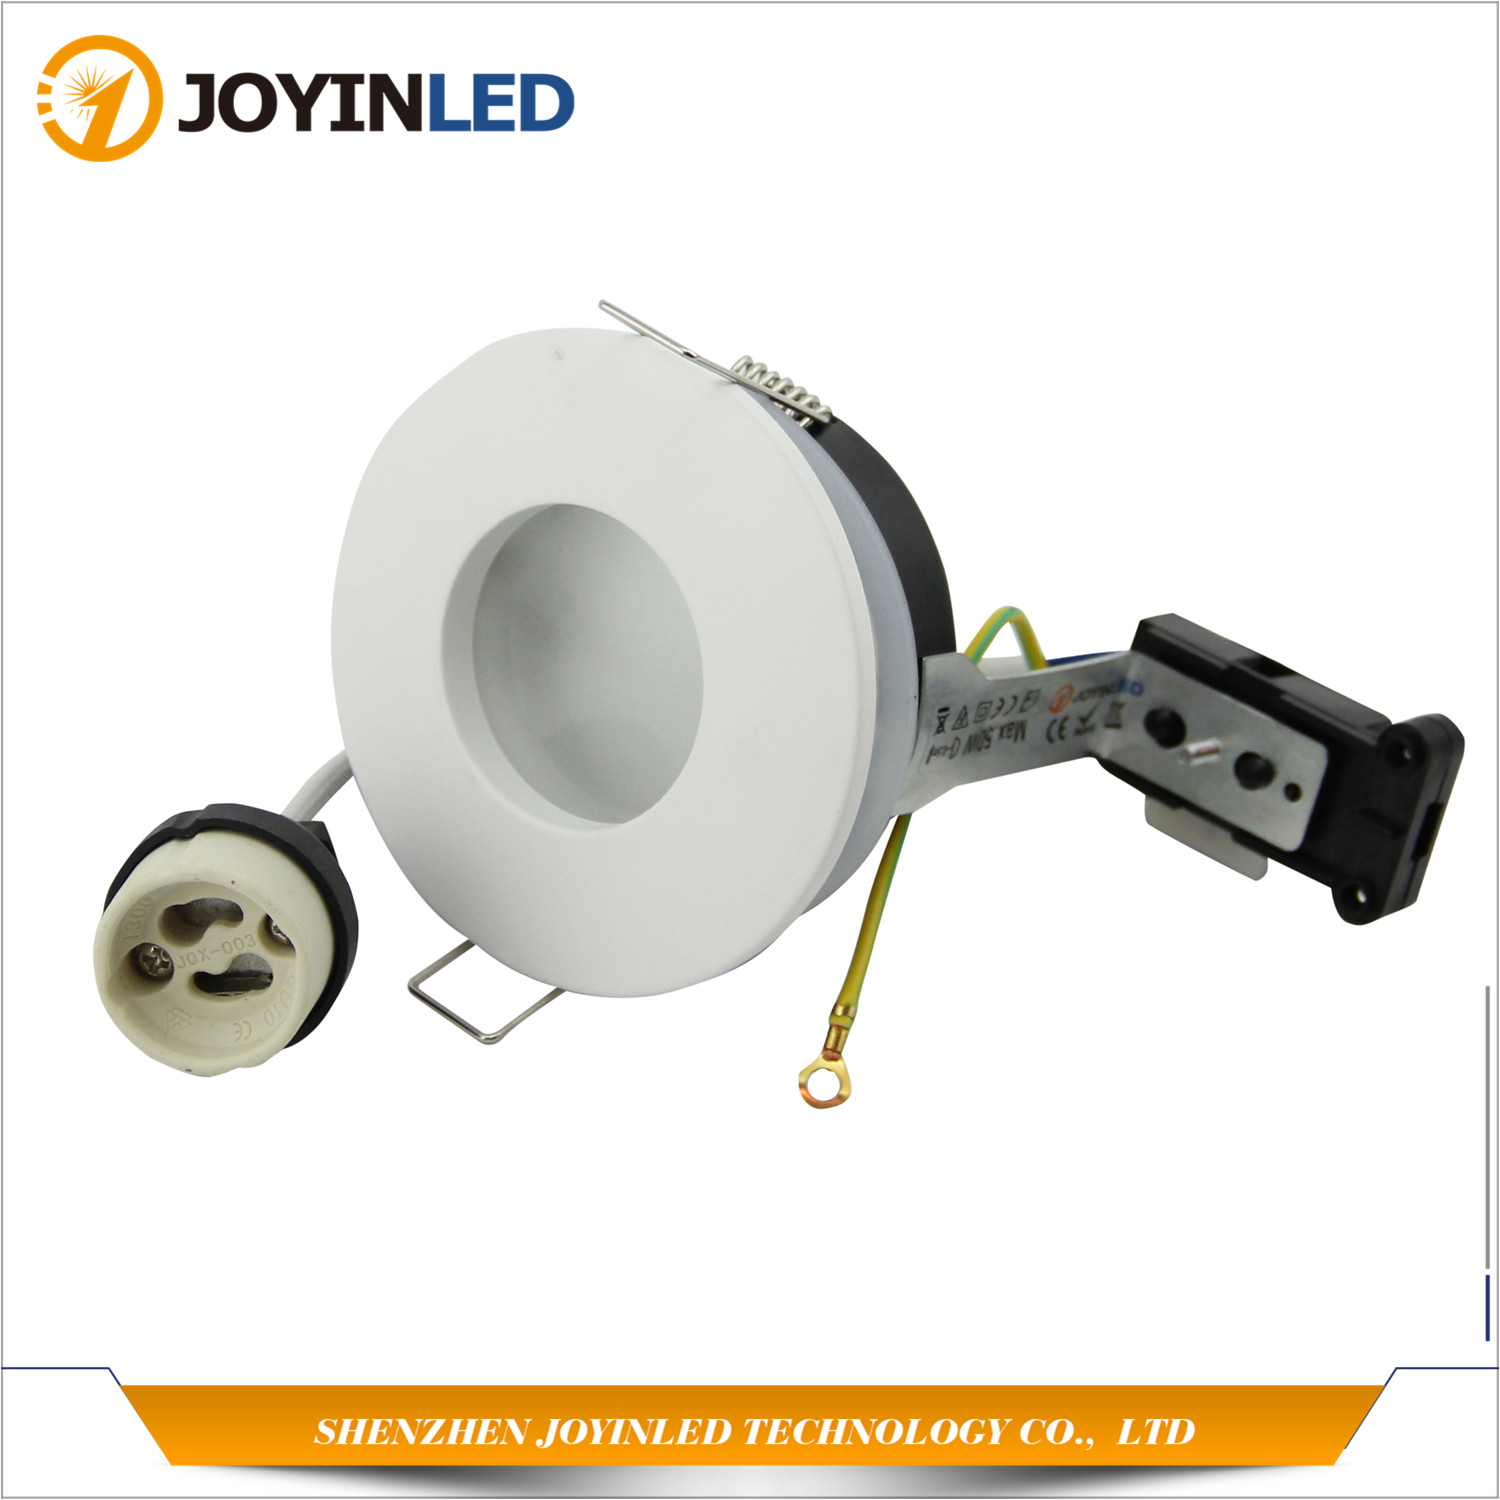 Free shipping Zinc Alloy IP65 Waterproof Round Fitting LED Downlight Kit Recessed Trim Fixture With GU10 BaseFree shipping Zinc Alloy IP65 Waterproof Round Fitting LED Downlight Kit Recessed Trim Fixture With GU10 Base